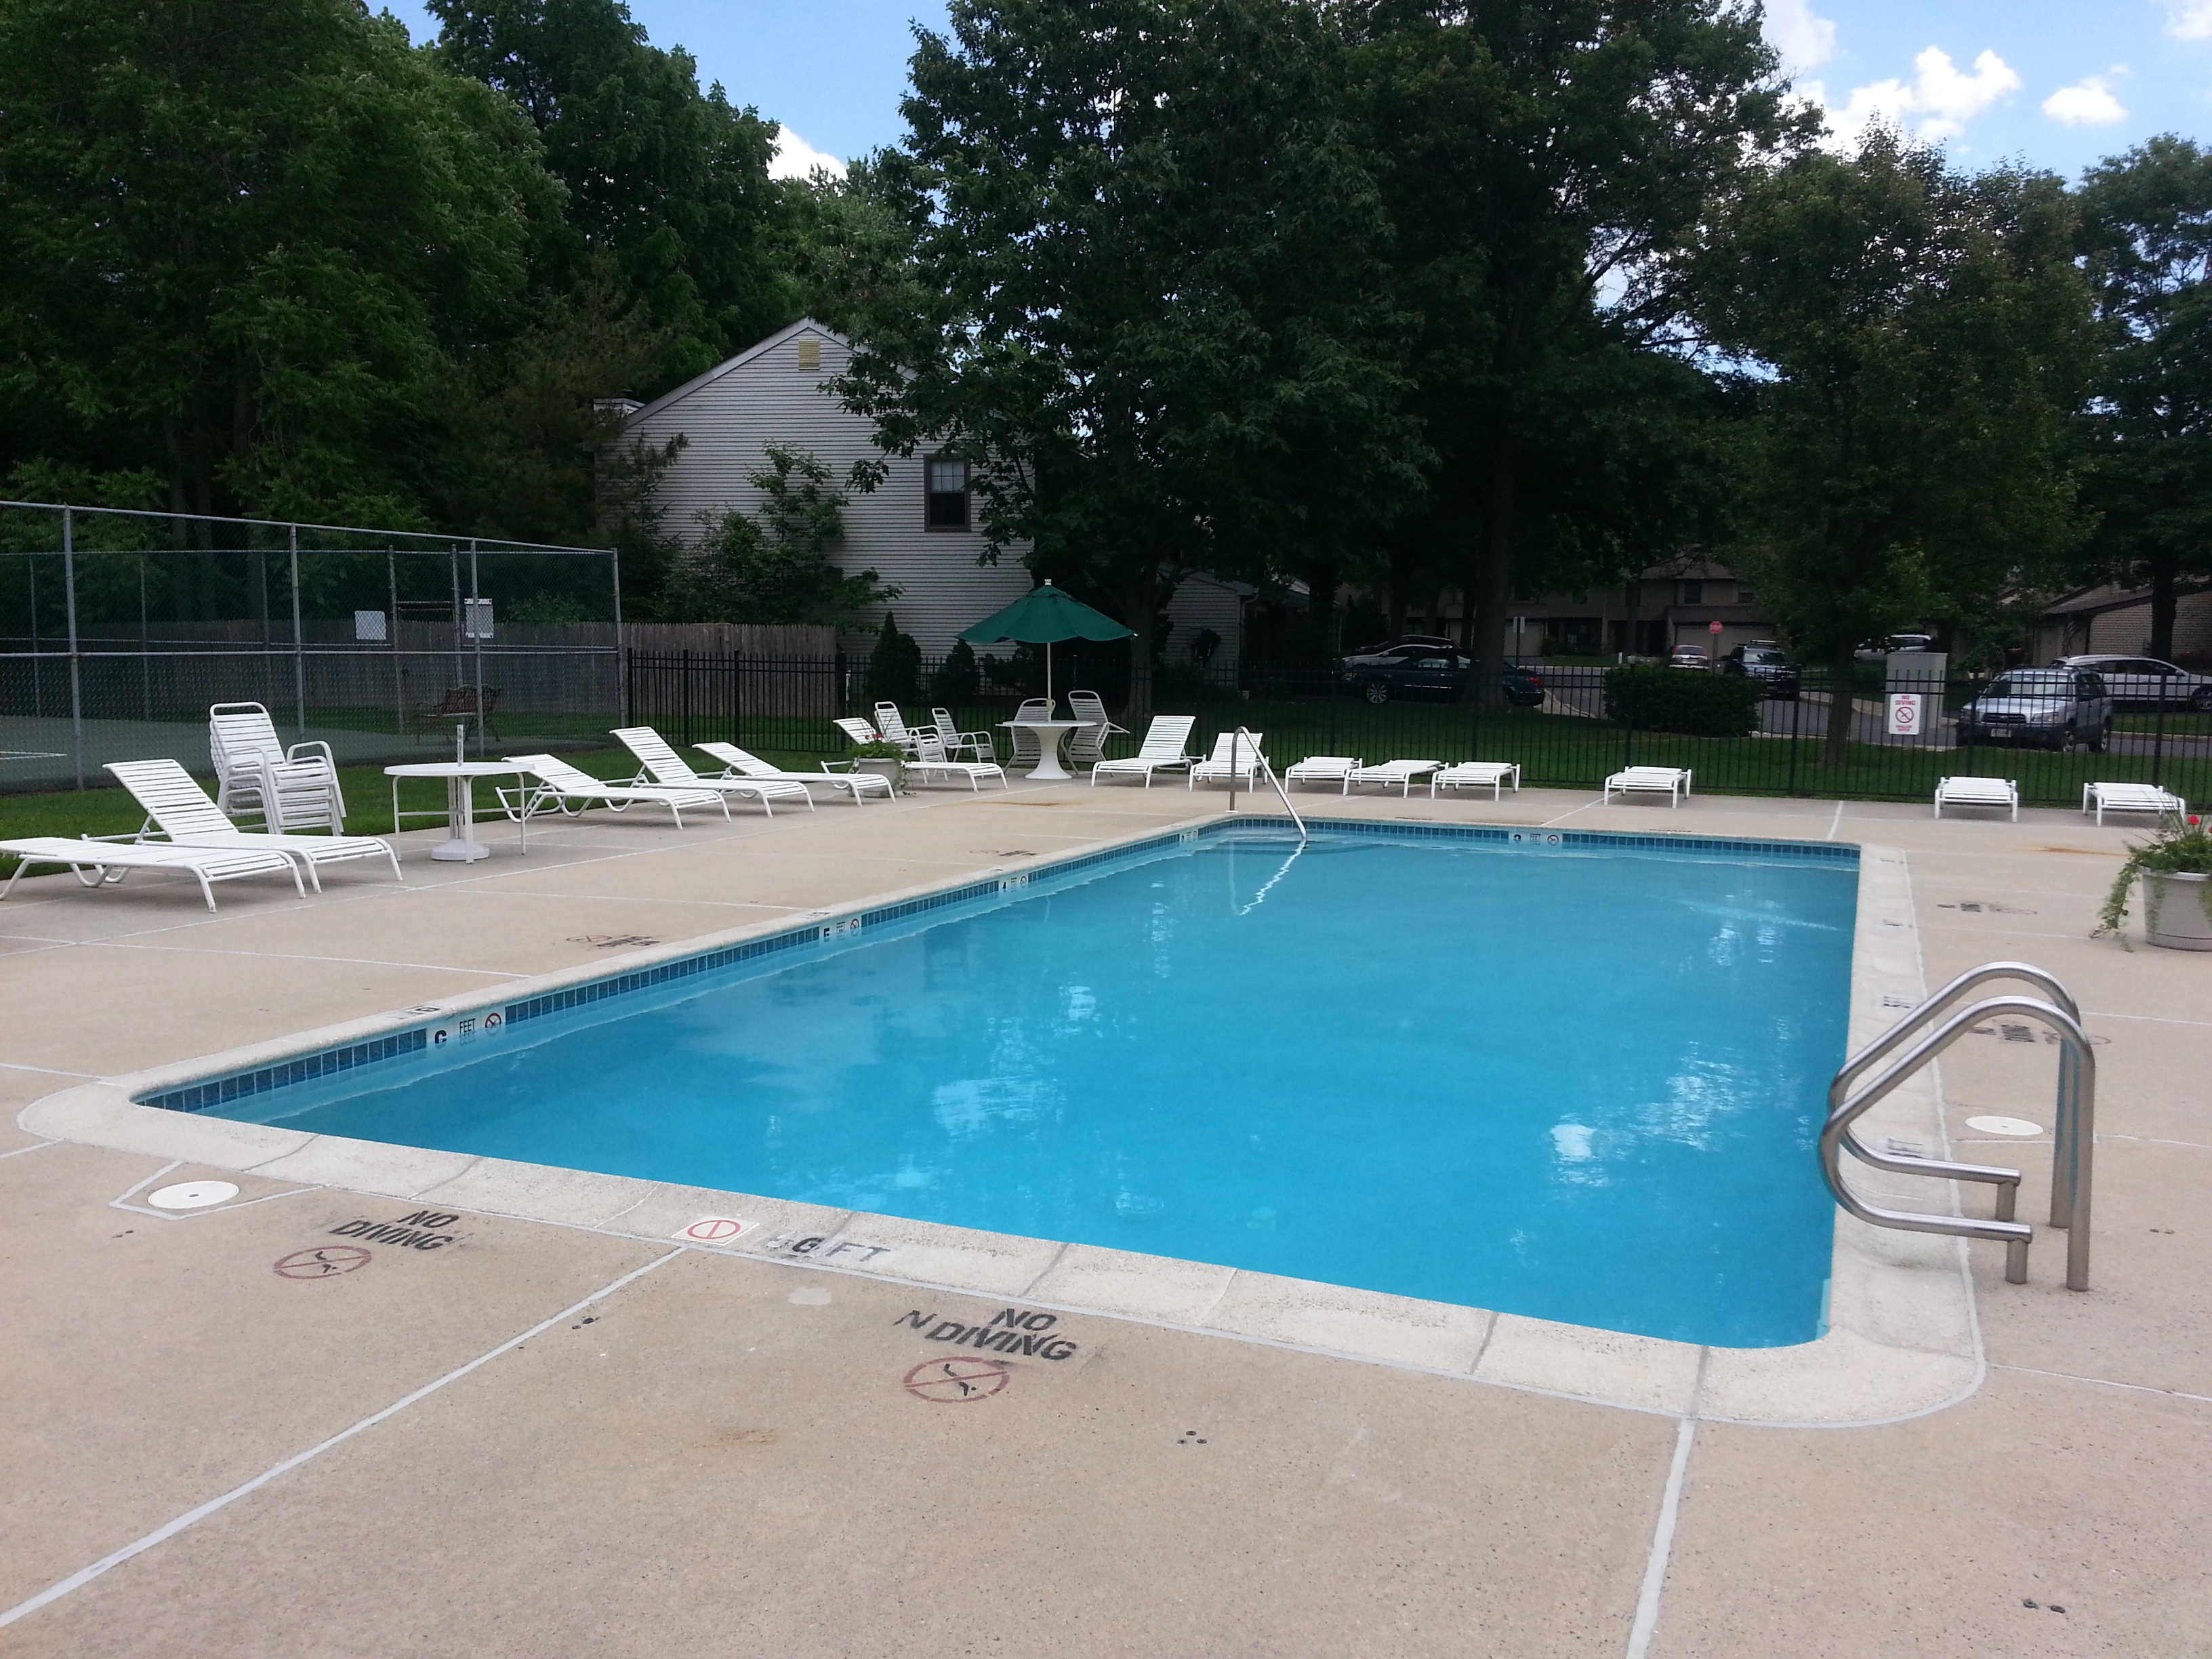 Kimberly Woods has a beautiful community pool.